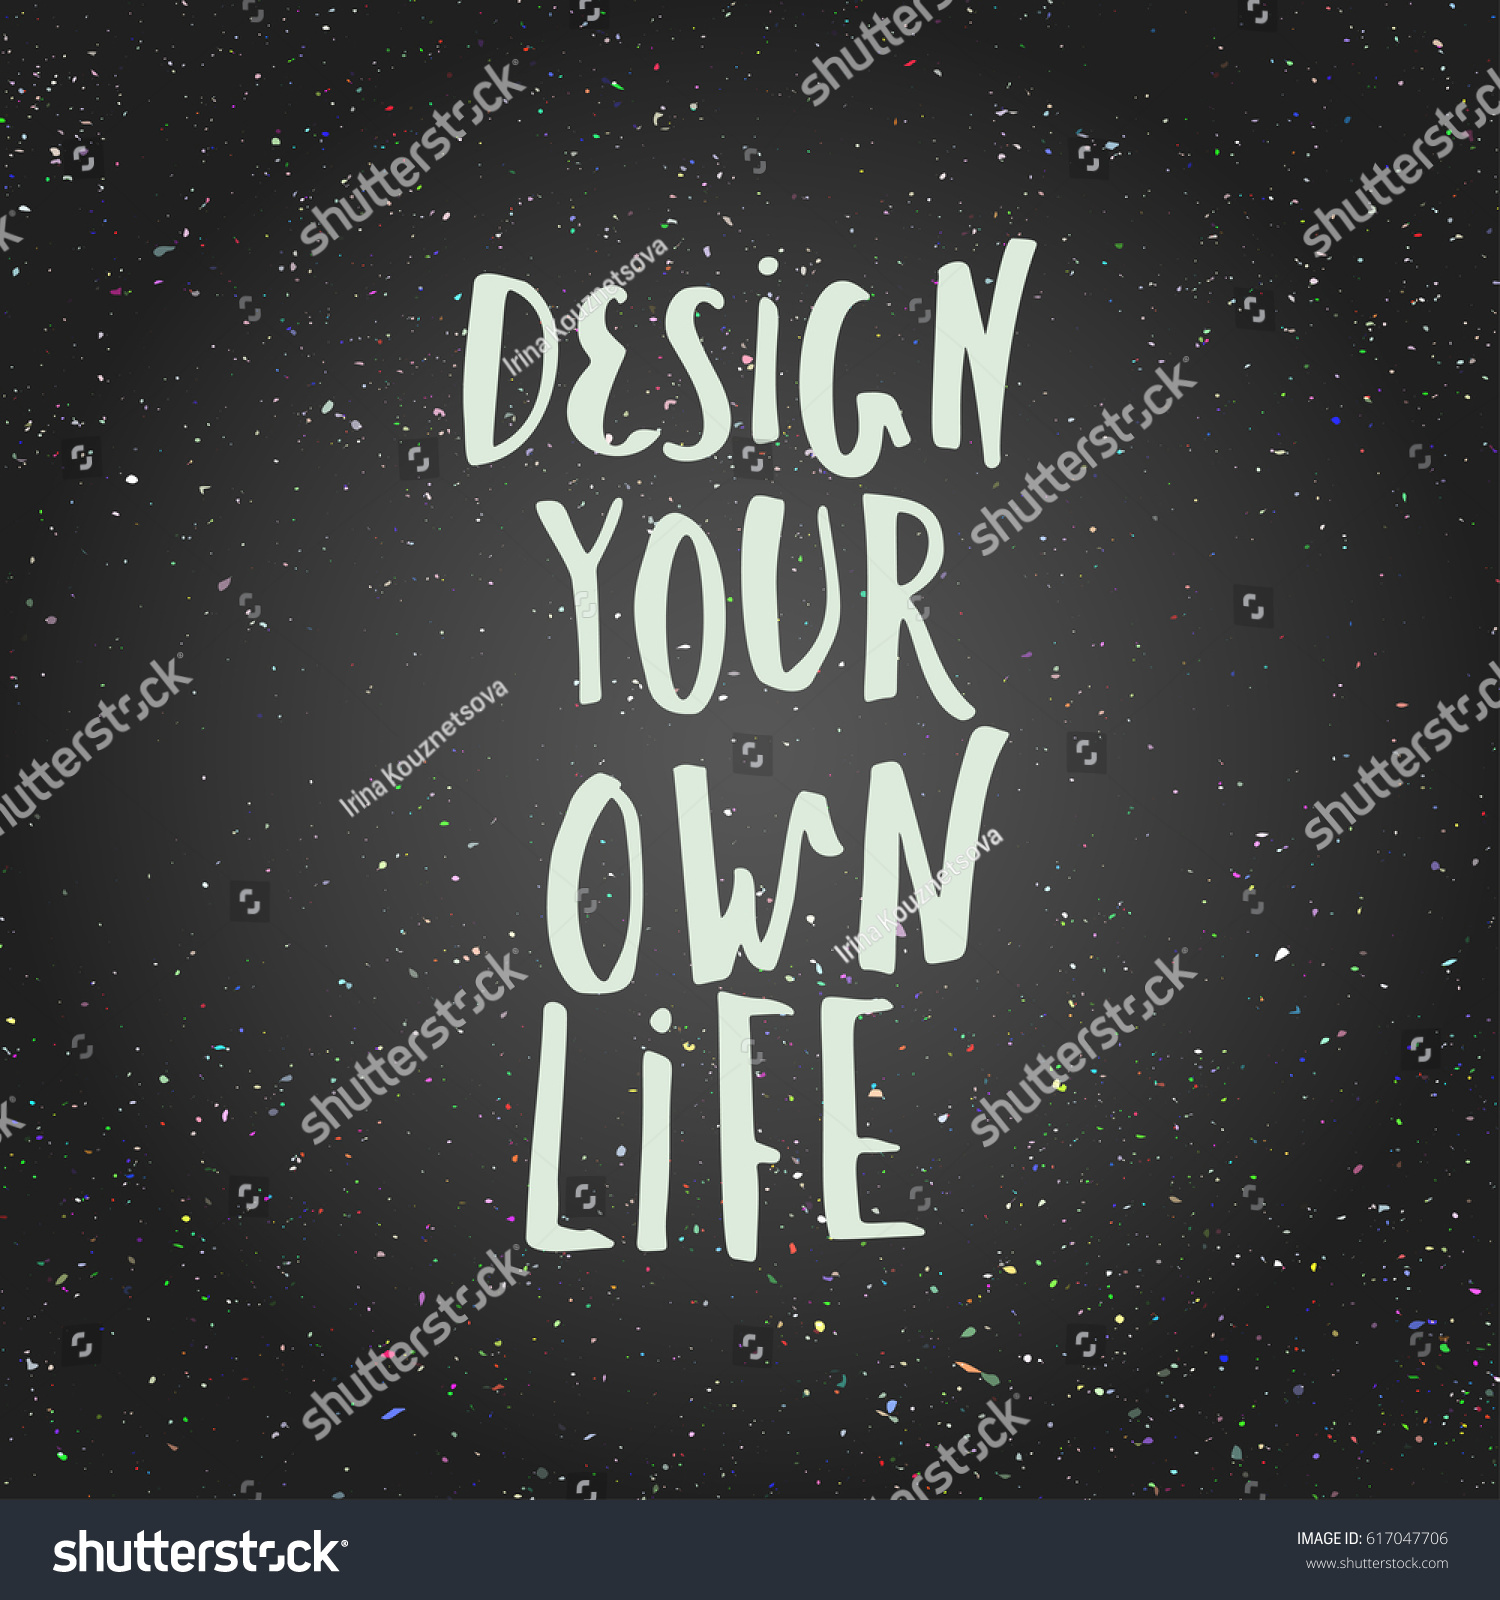 Design Your Own Life Inspirational Quote For Home Decor T Shirt